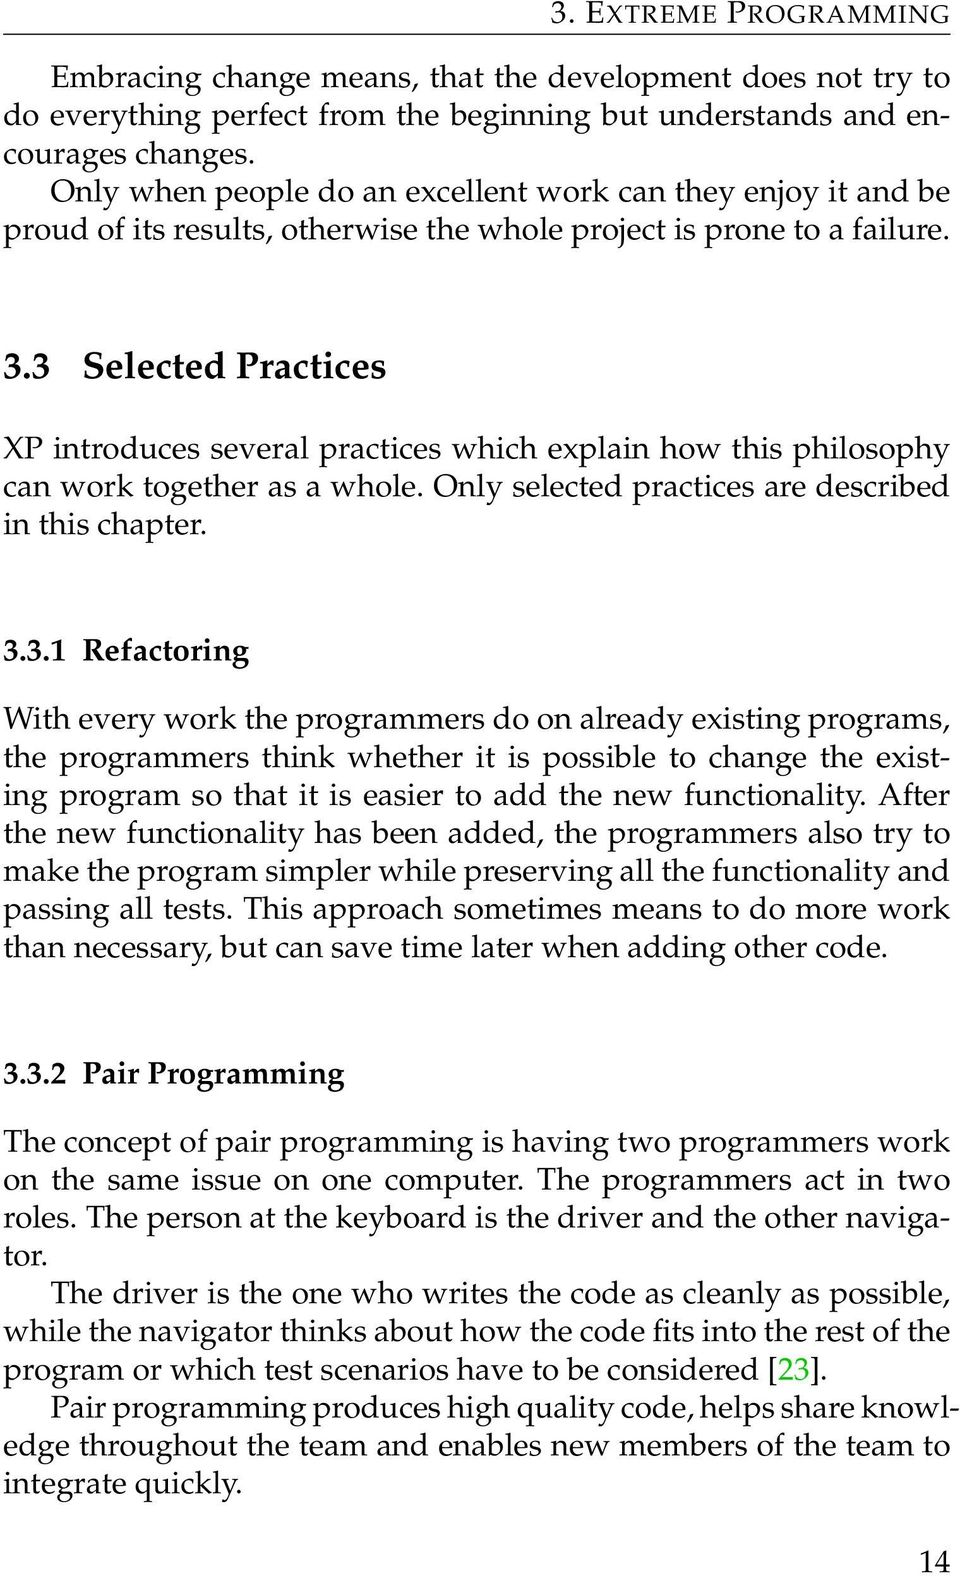 3 Selected Practices XP introduces several practices which explain how this philosophy can work together as a whole. Only selected practices are described in this chapter. 3.3.1 Refactoring With